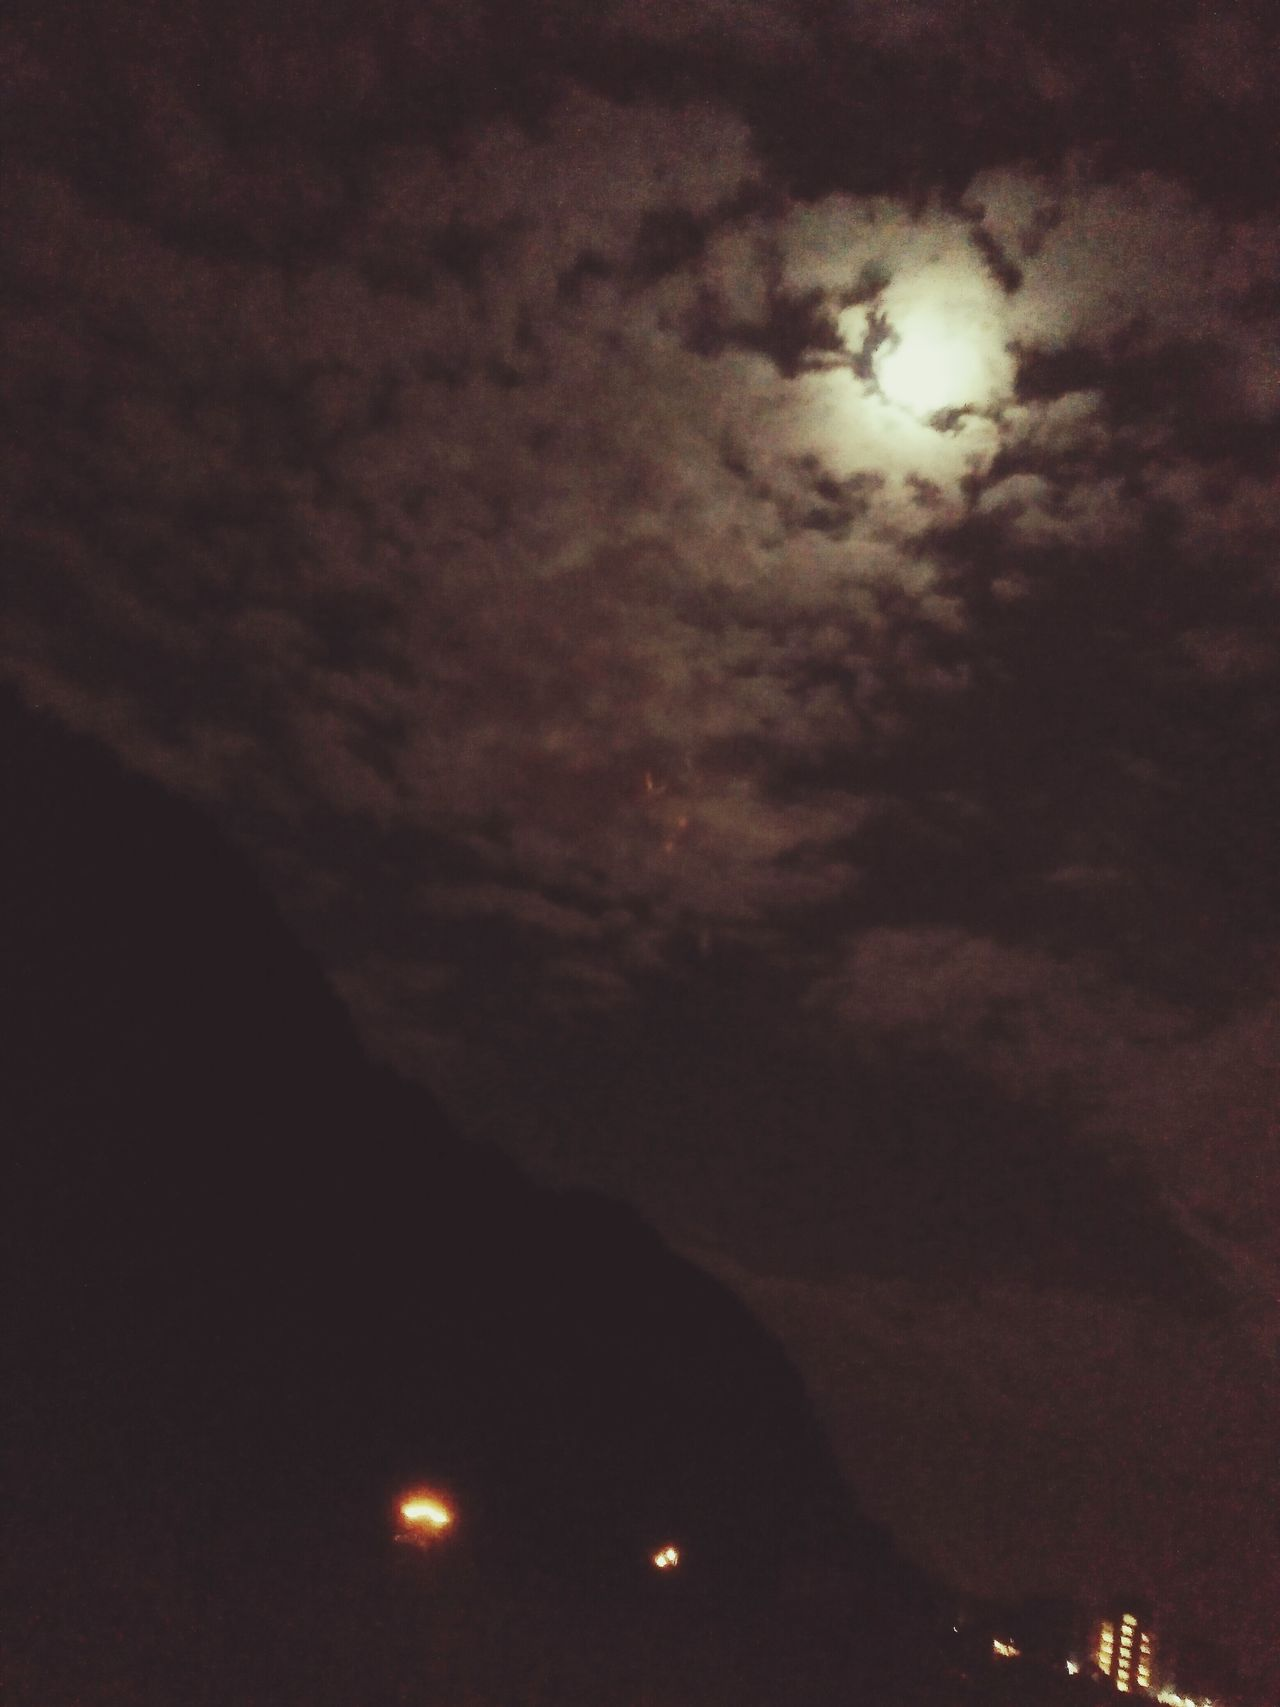 Moon Sky Night Scenics No People Beauty In Nature Nature Outdoors Moon Dark Picture Taken By Oppof1 Camera Picture Taken On The Way Enjoying The View Traveling Photography Awesome_view Natural Phenomenon Moon Behind Cloudes